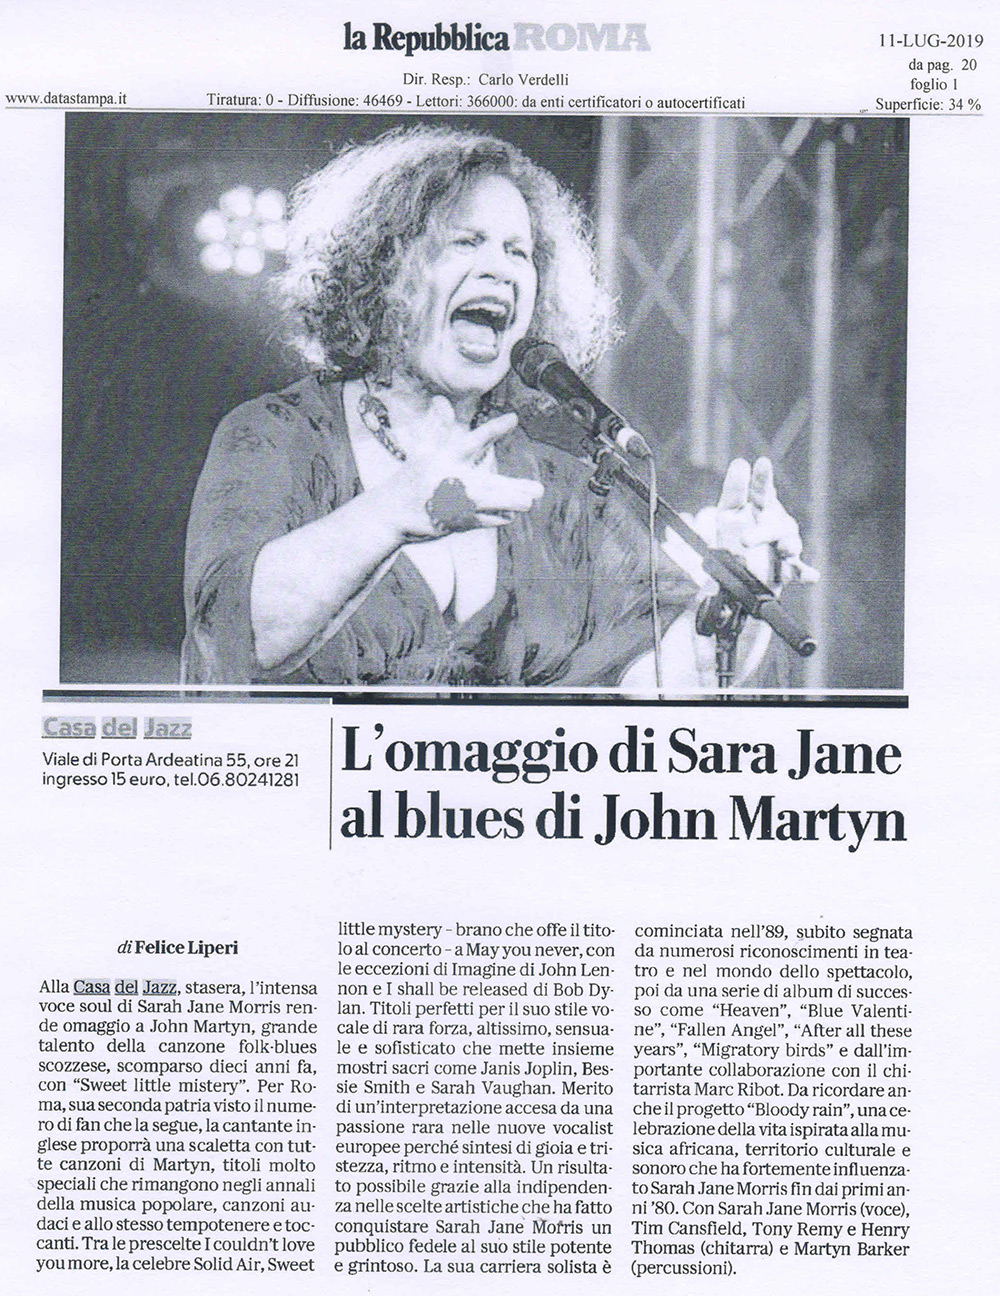 La Repubblica Roma Review